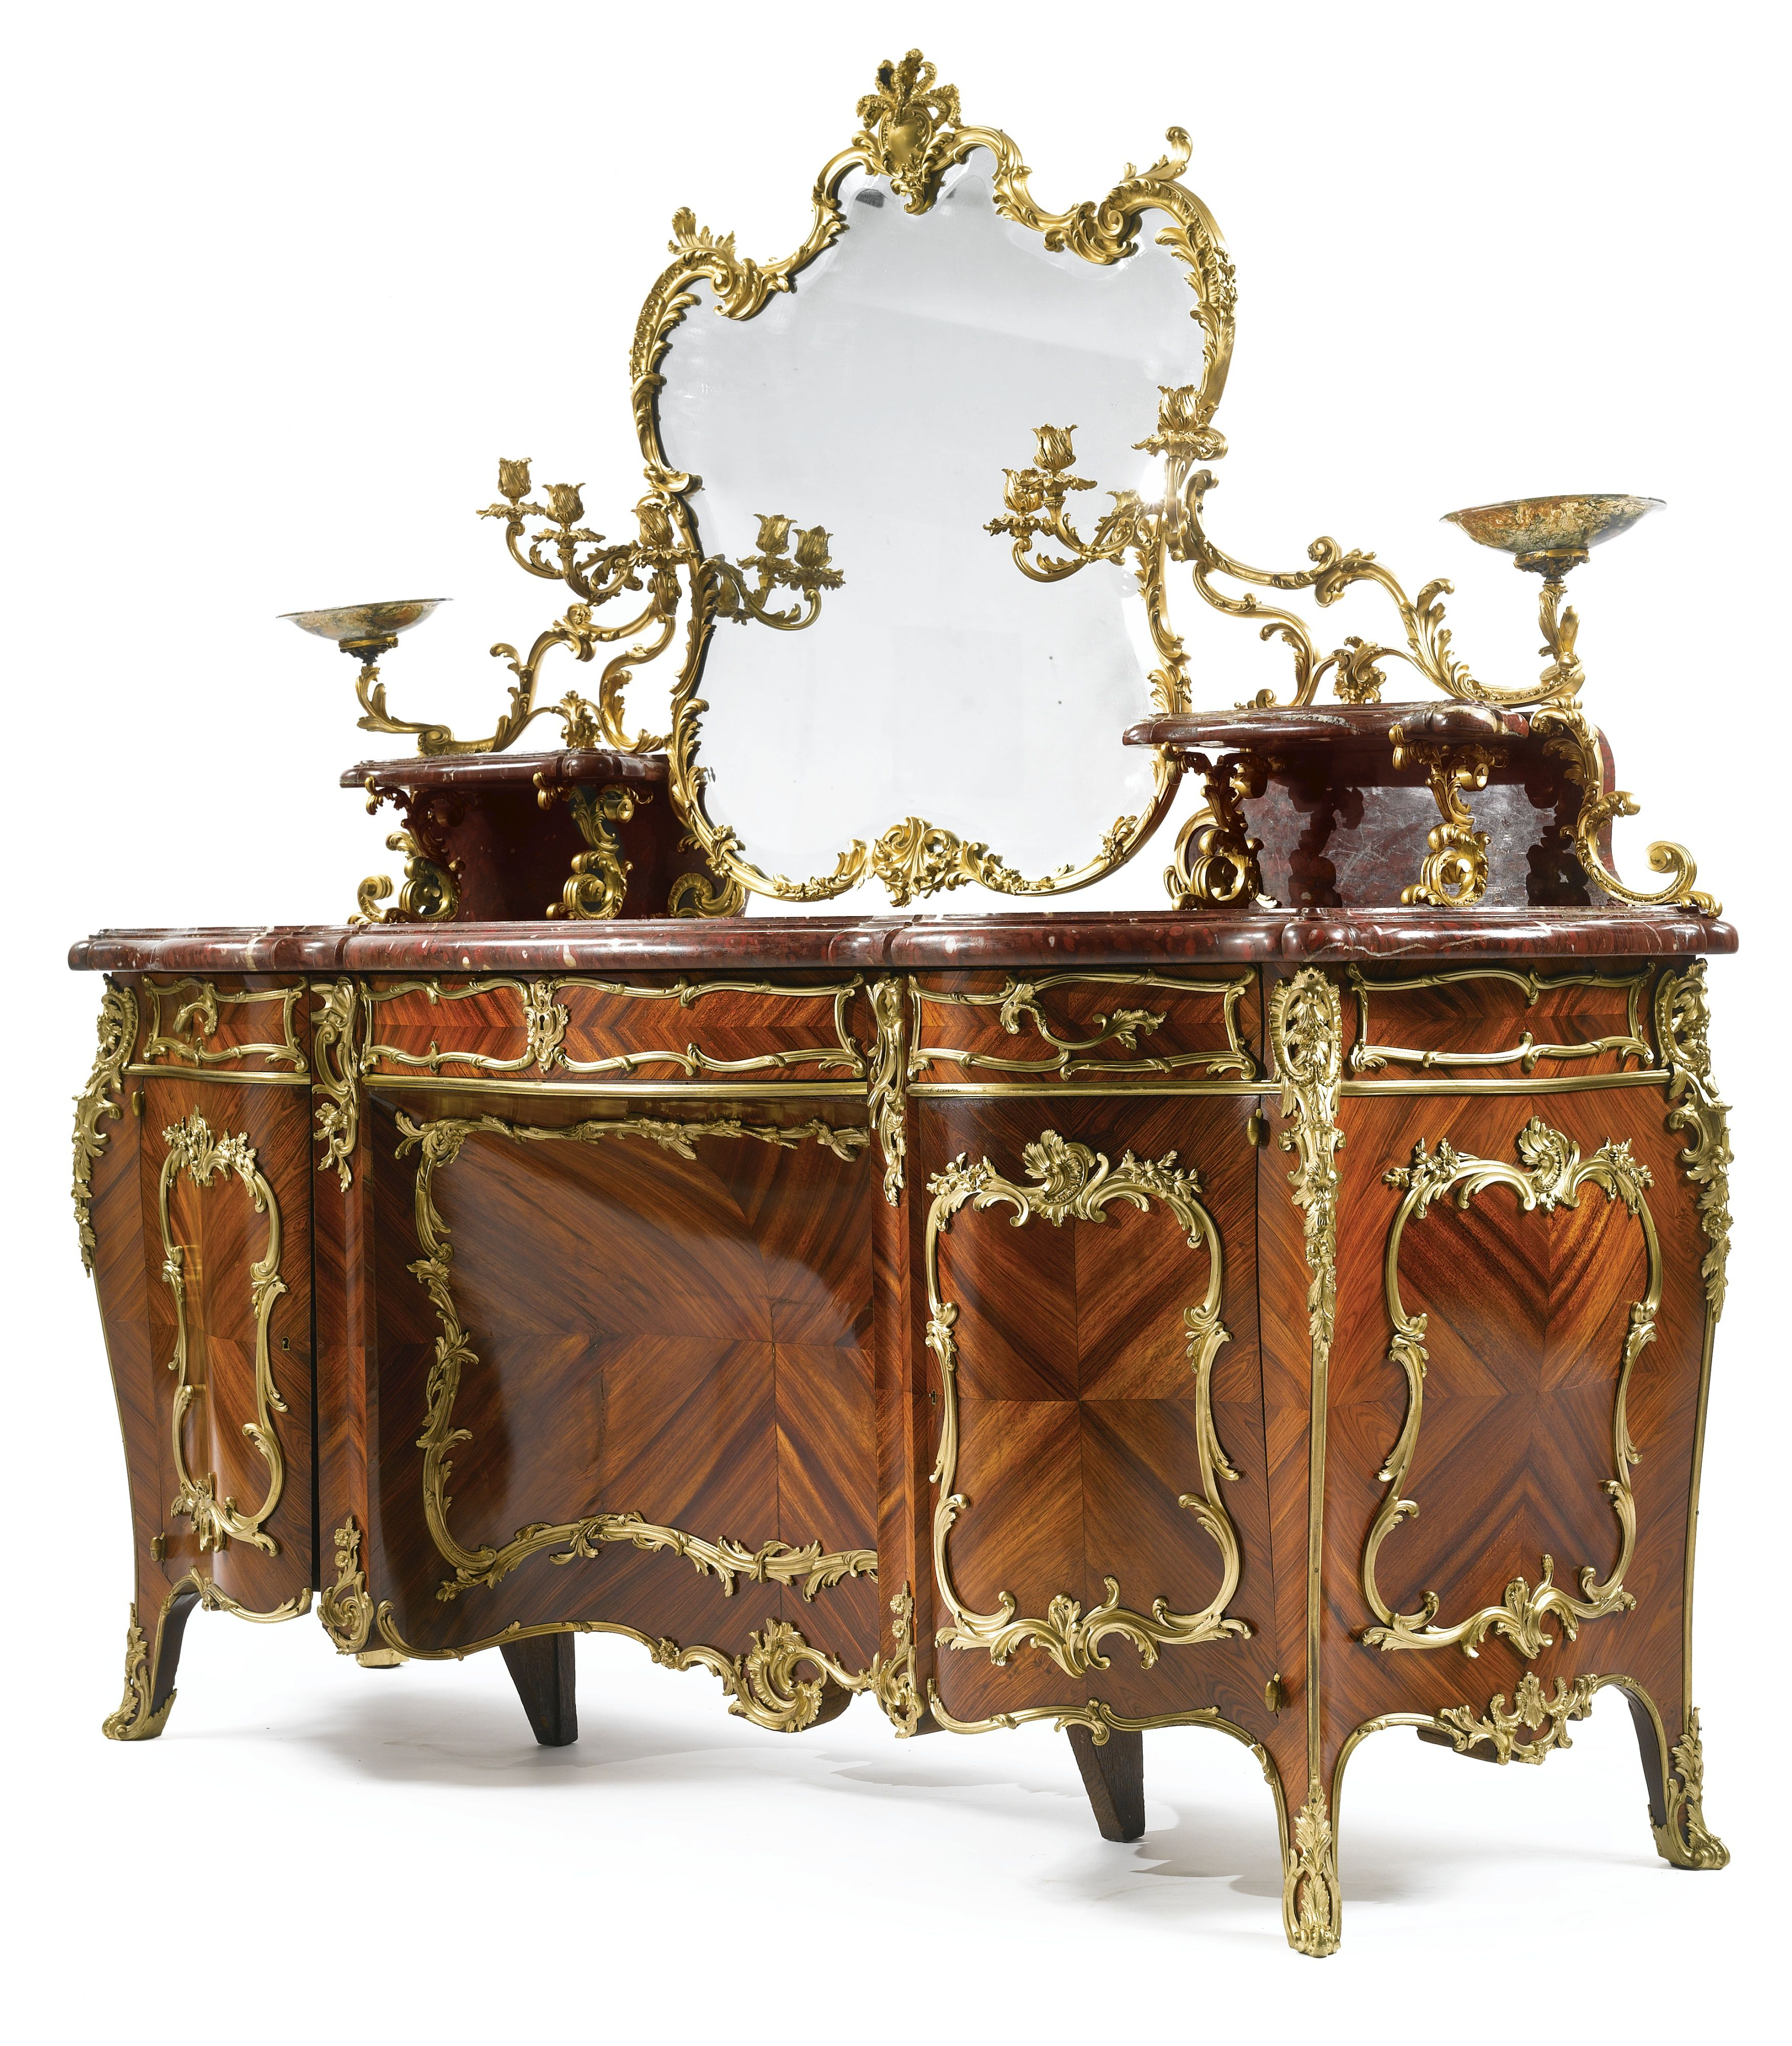 blaise th odore millet 1853 1918 an impressive louis xv revival gilt m bel barock m bel. Black Bedroom Furniture Sets. Home Design Ideas